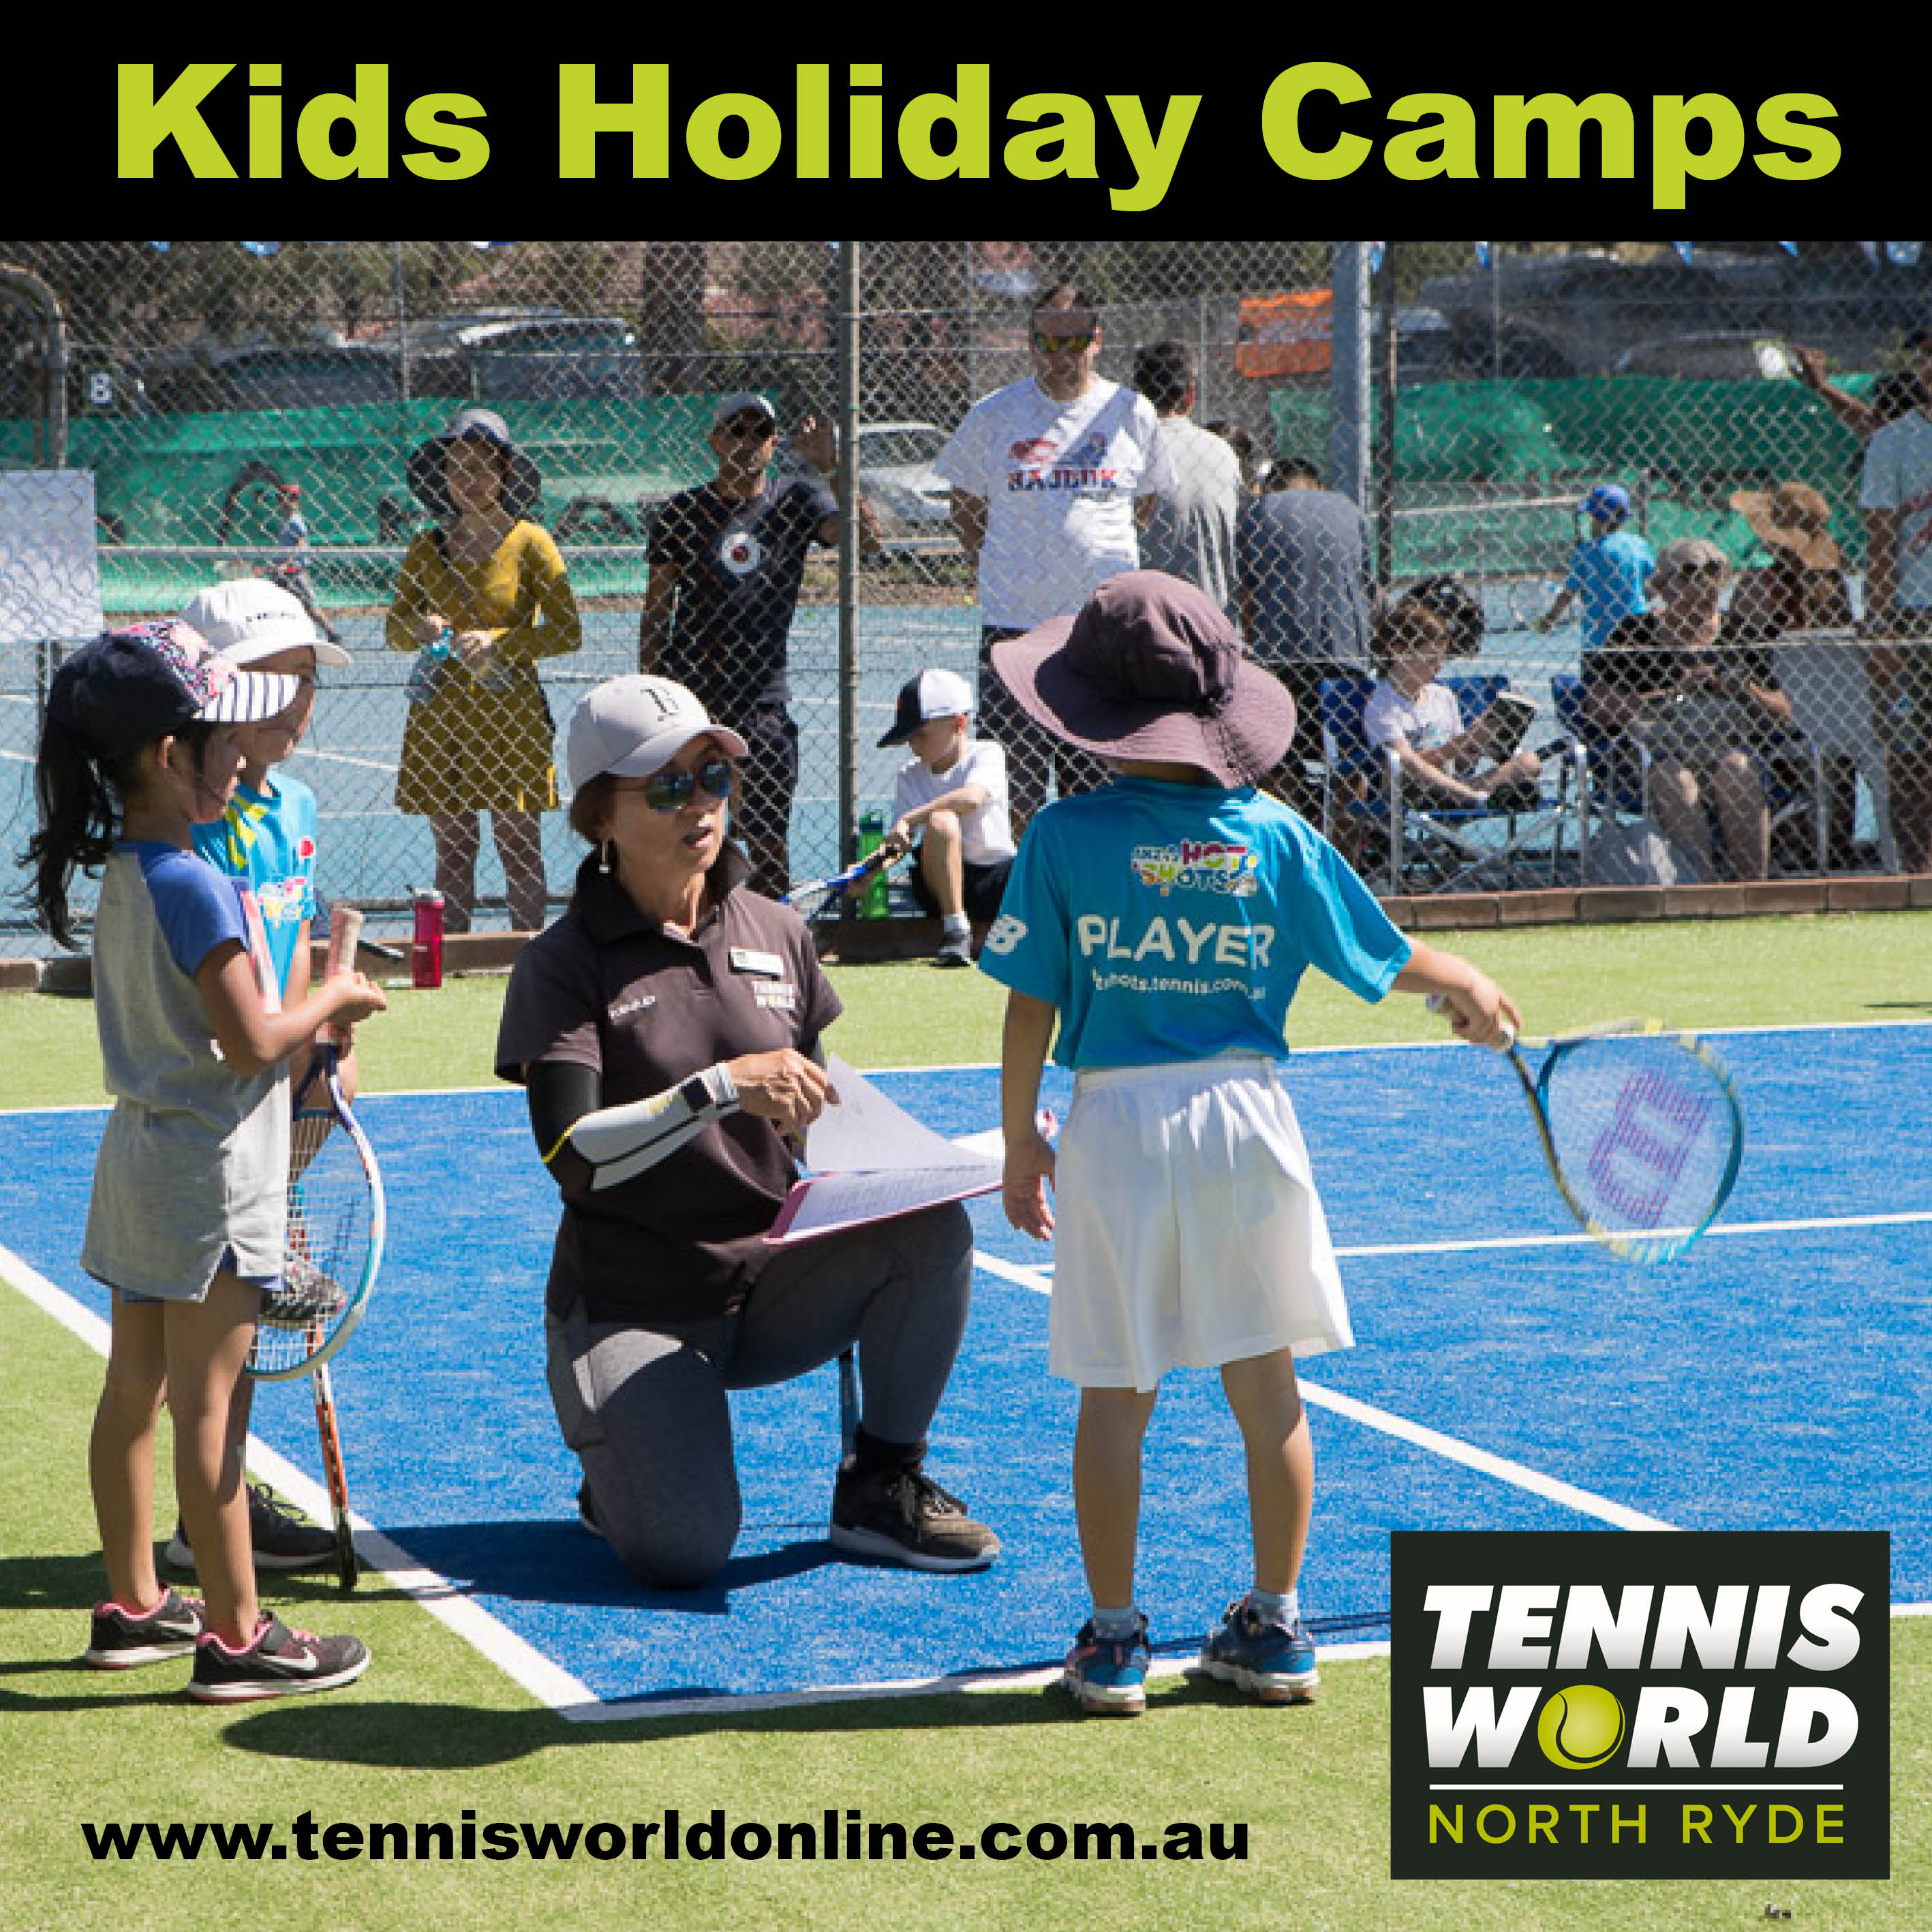 Tennis World North Ryde- October School Holidays Activities Guide